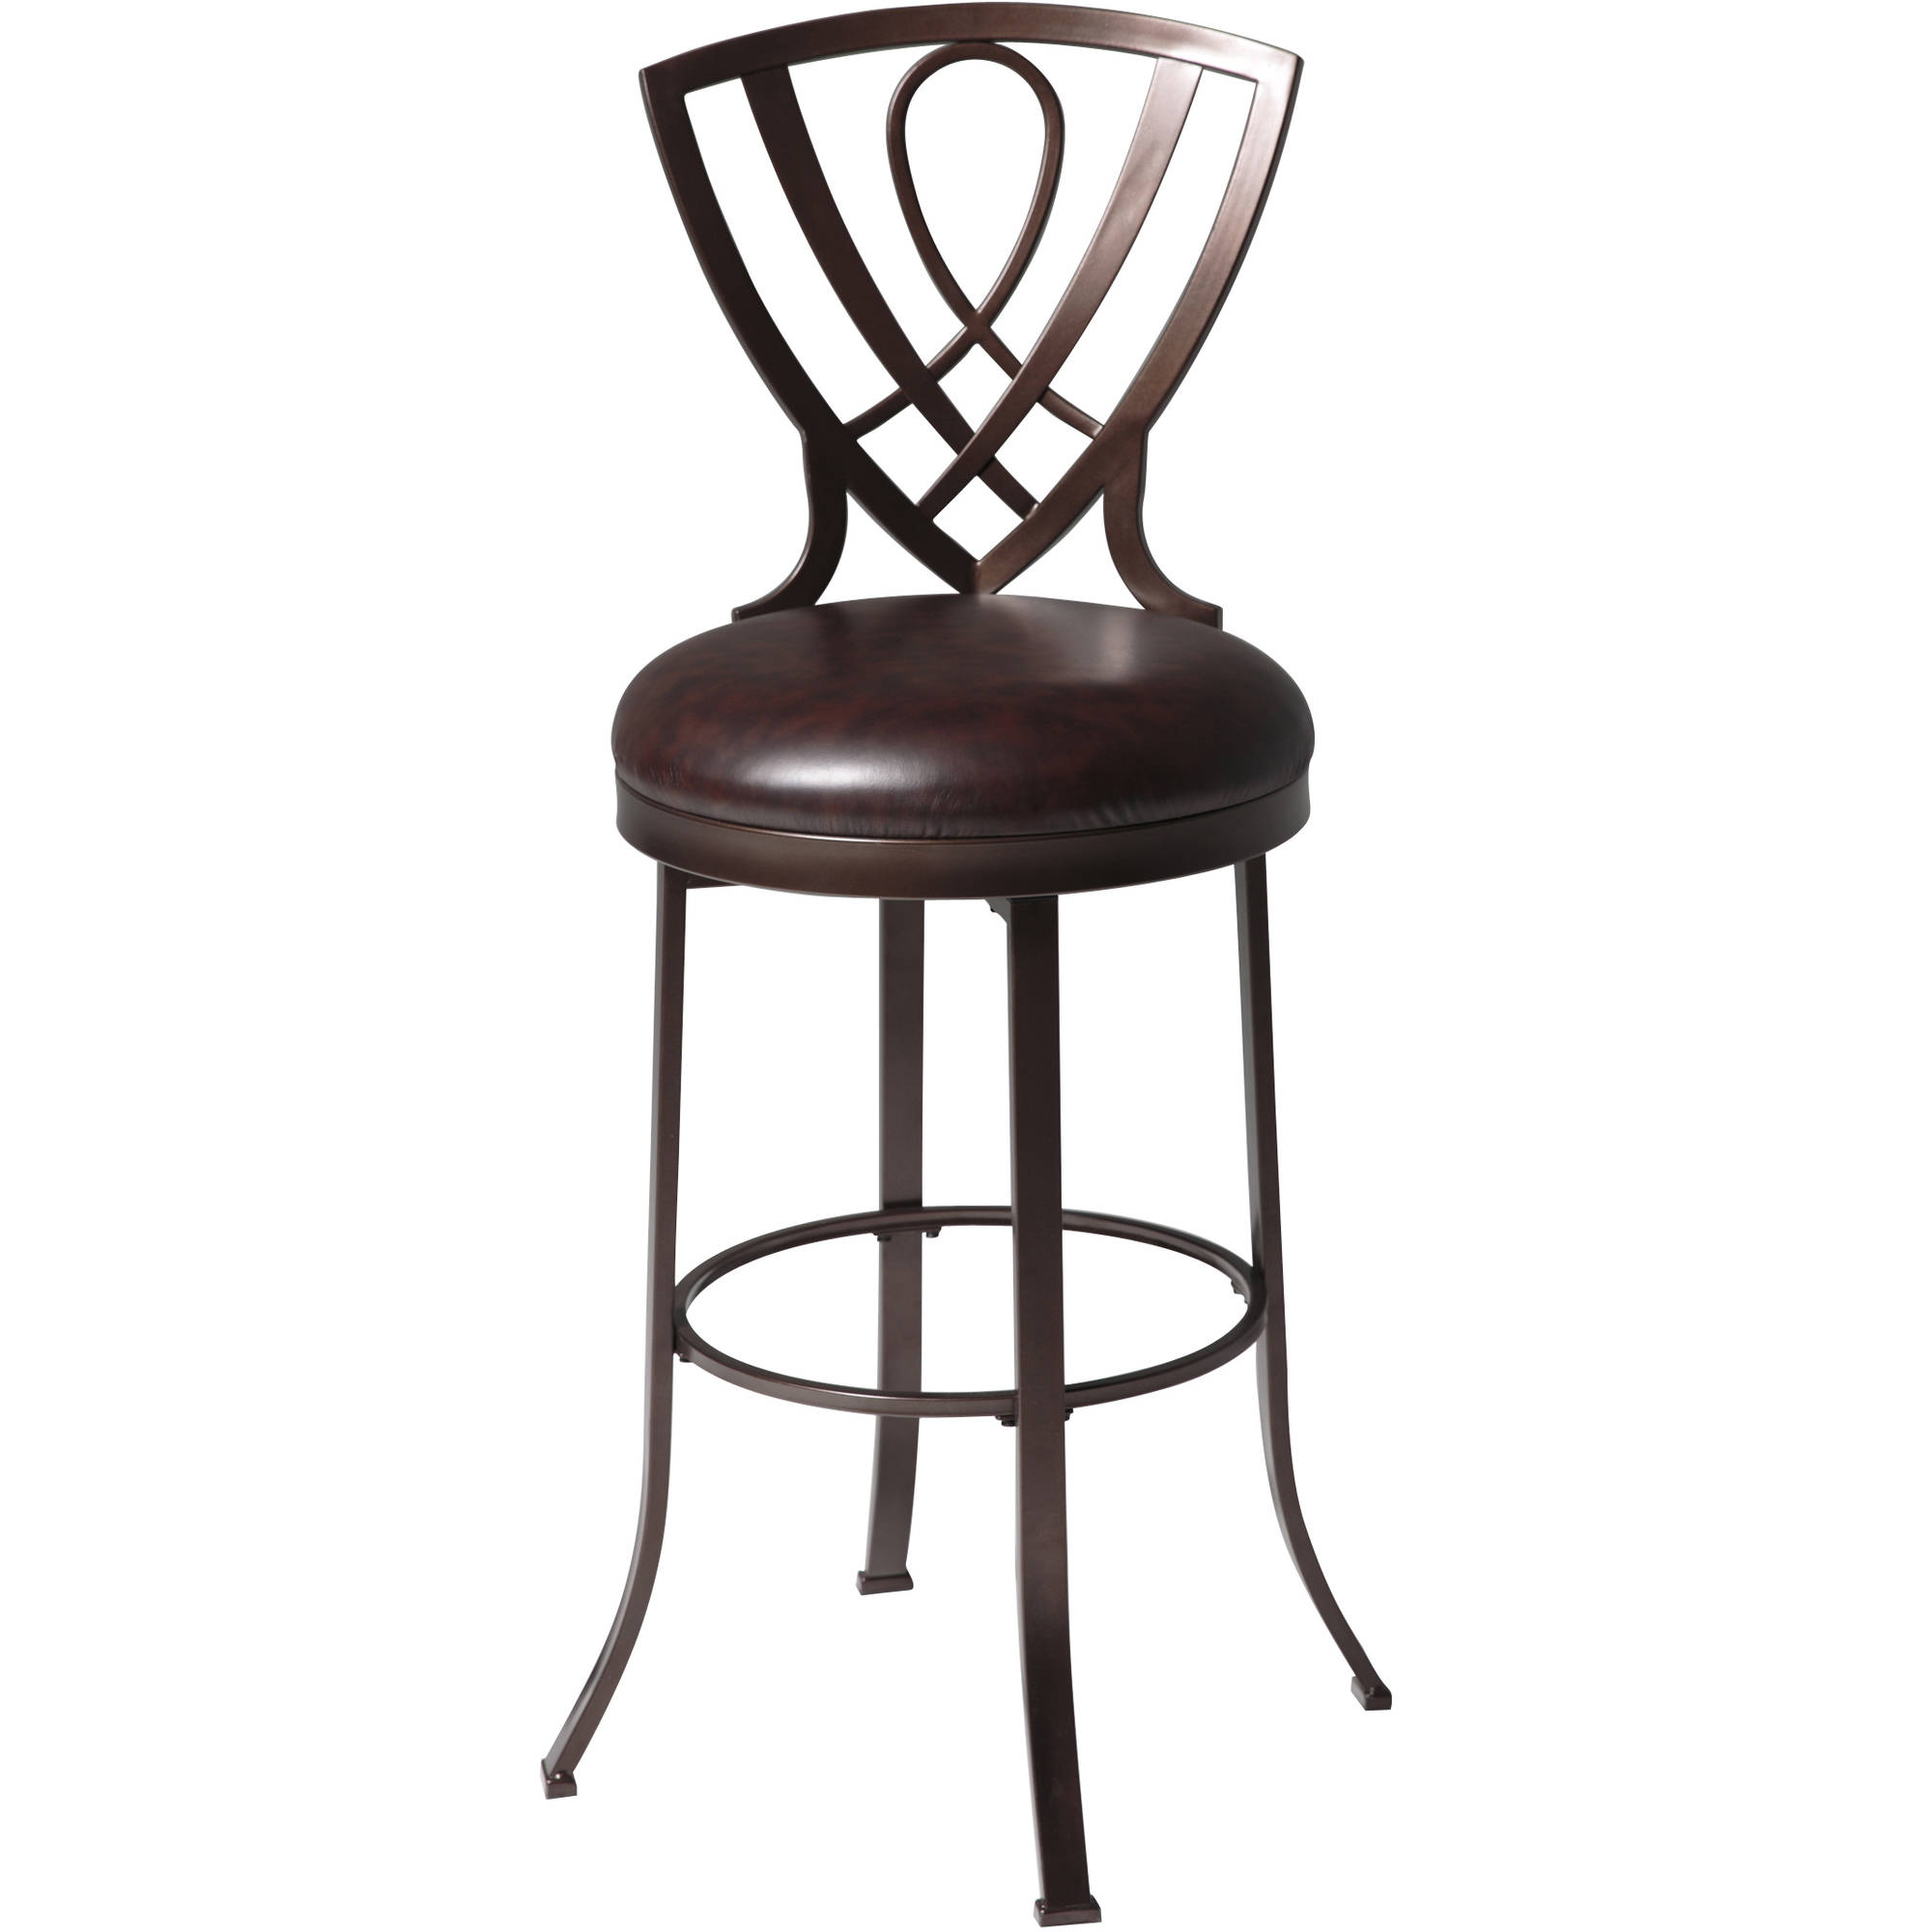 "Fashion Bed Group by Leggett & Platt Lincoln 26"" Counter Stool"